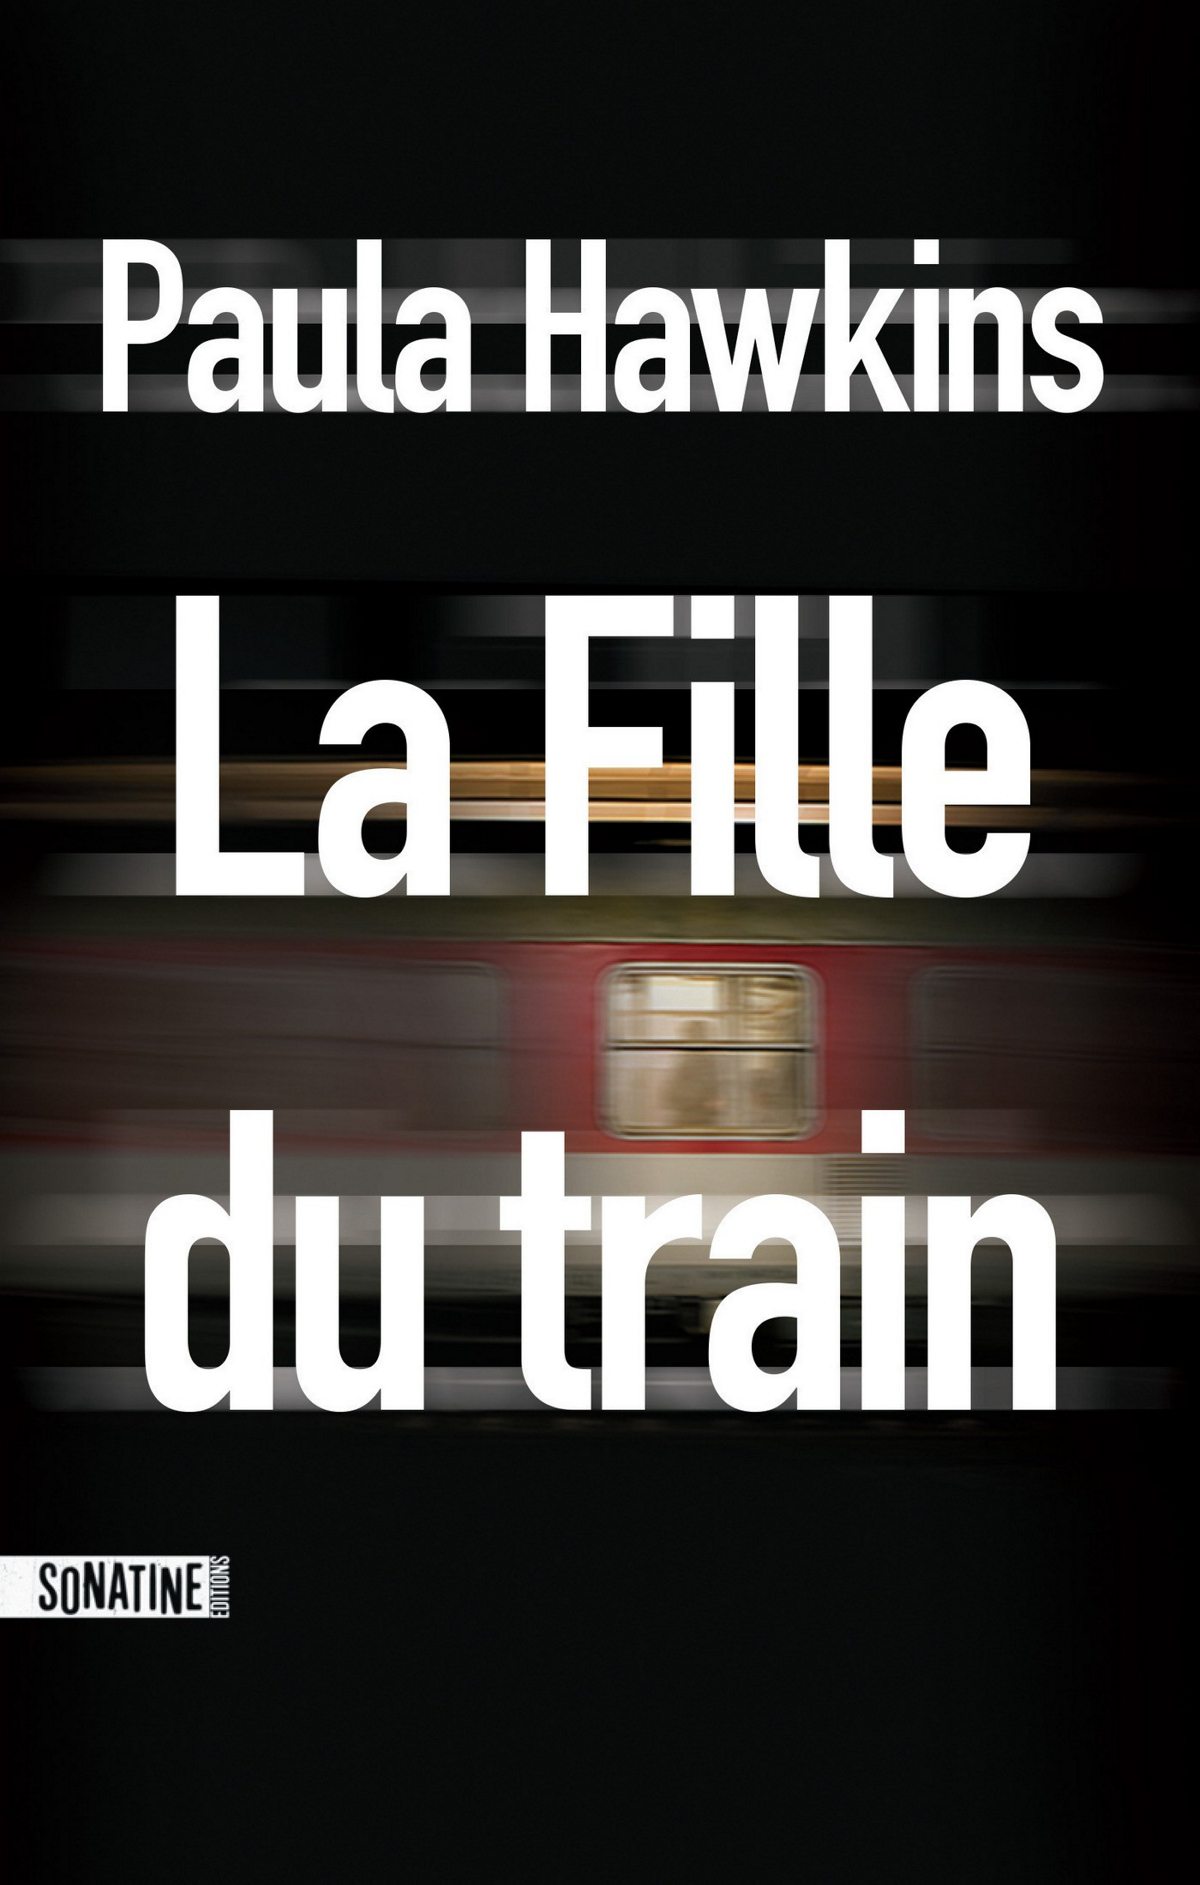 La Fille du train de Paula Hawkins, un thriller aux retombées internationales